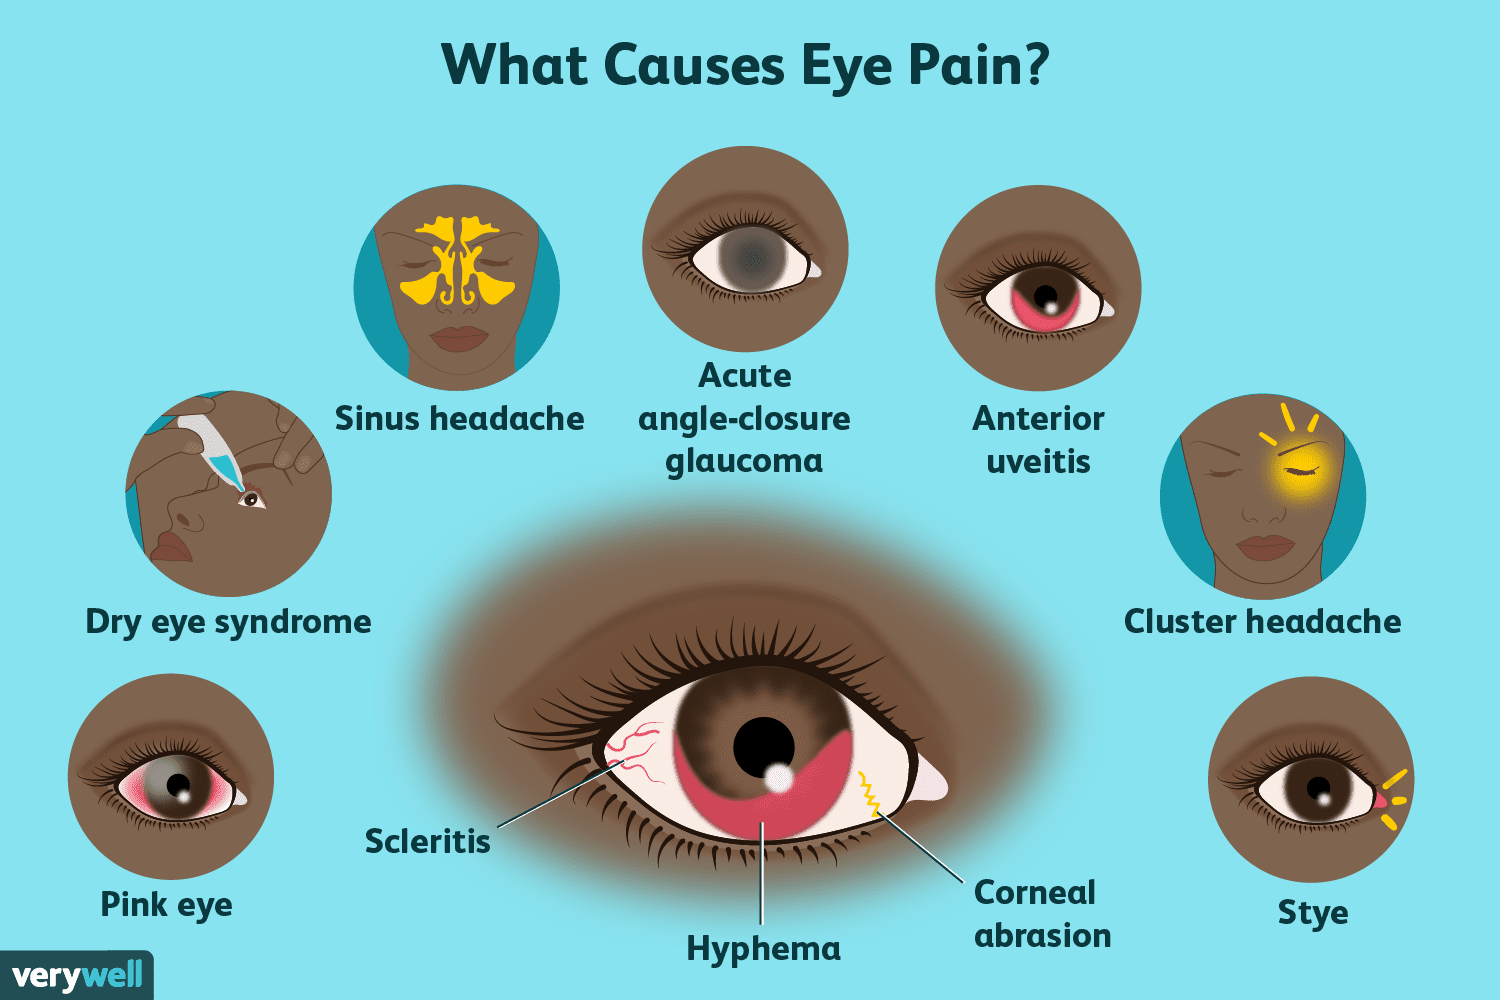 Eye Pain: Causes, Treatment, and When to See a Doctor